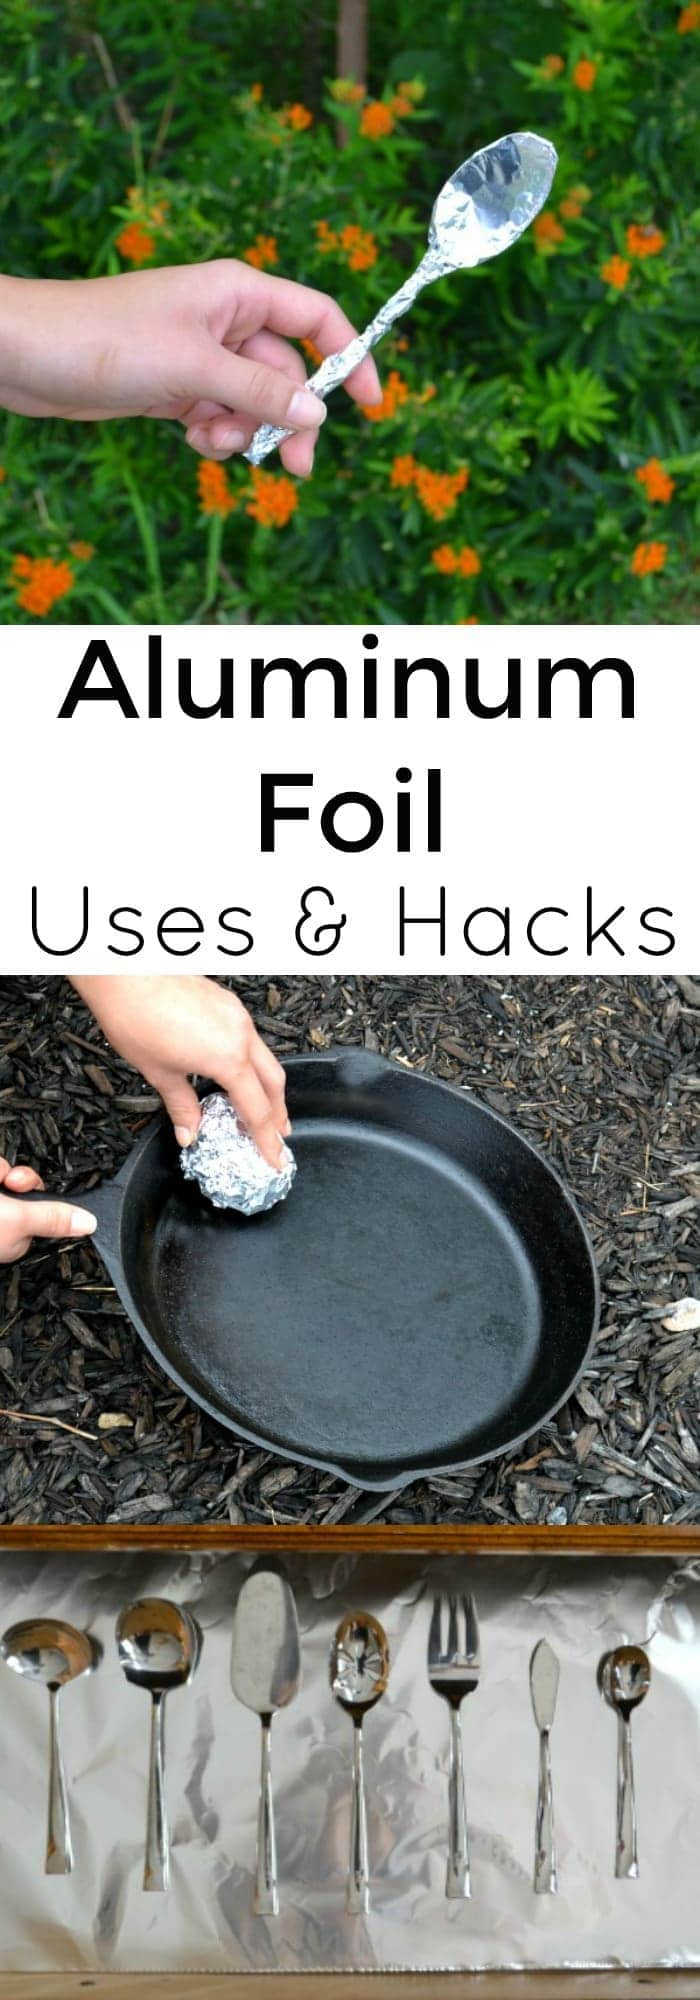 Aluminum can be used for a lot more than lining pans in the kitchen